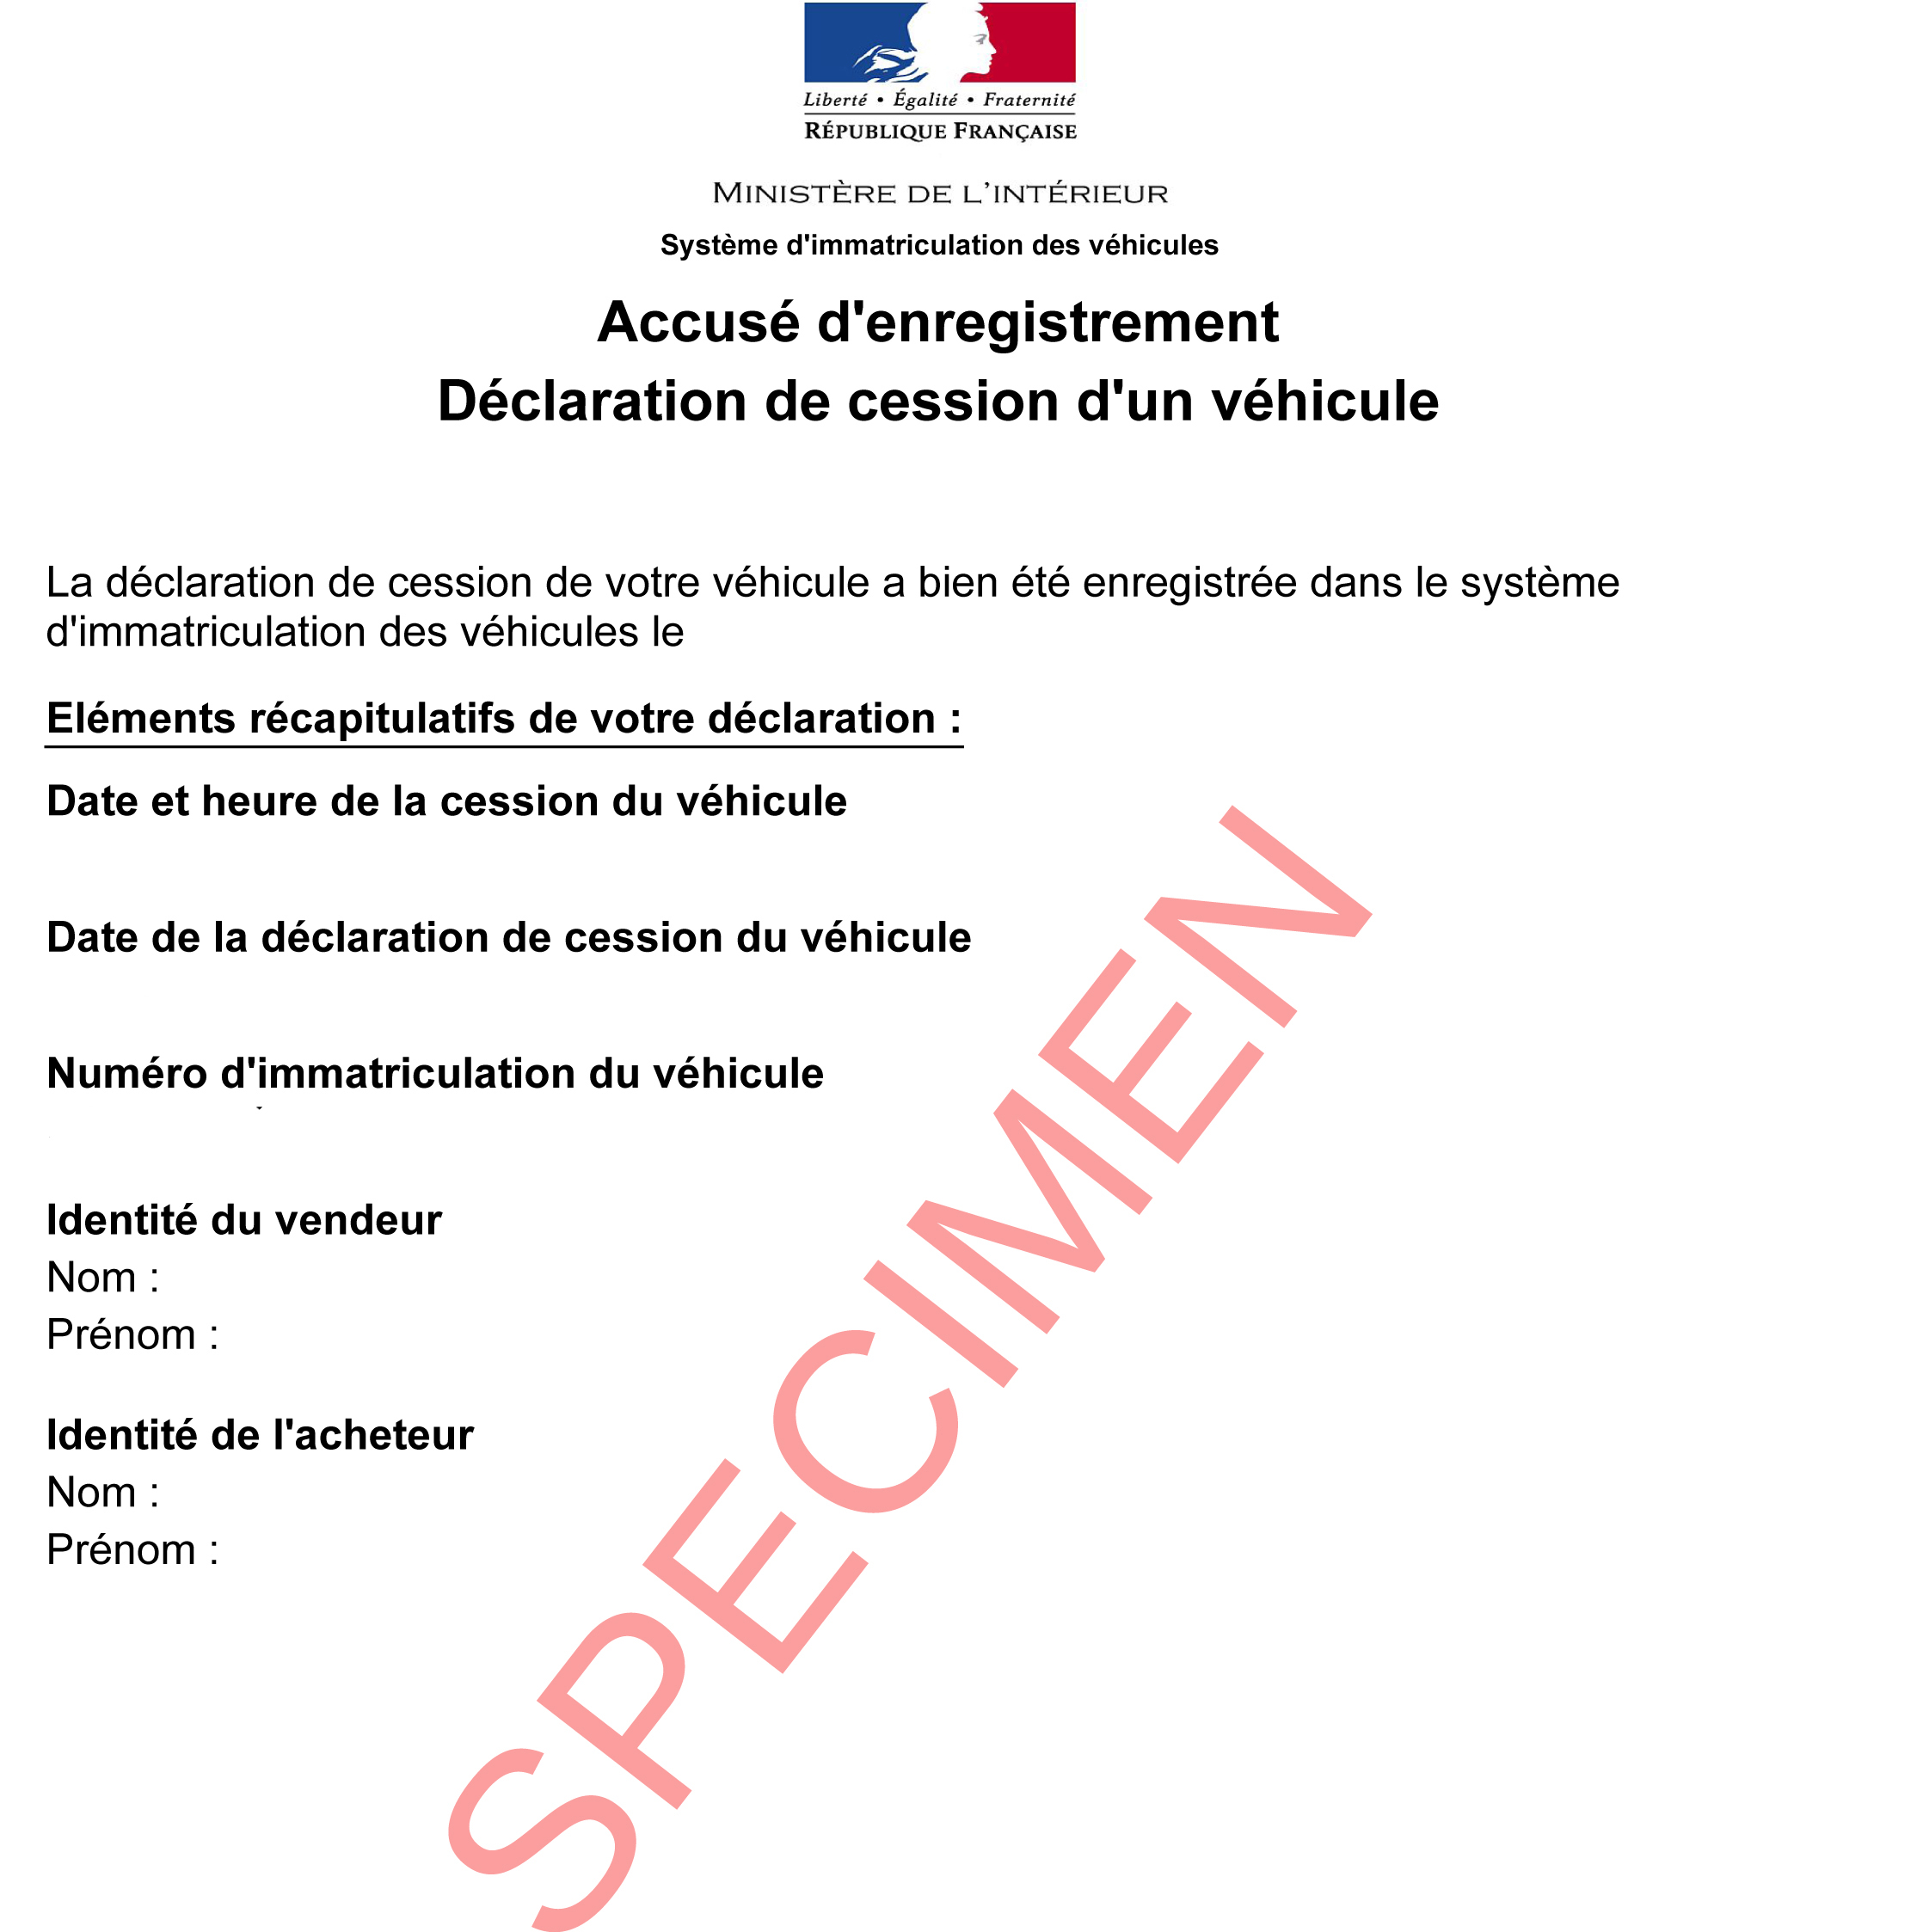 accusé d'enregistrement de cession